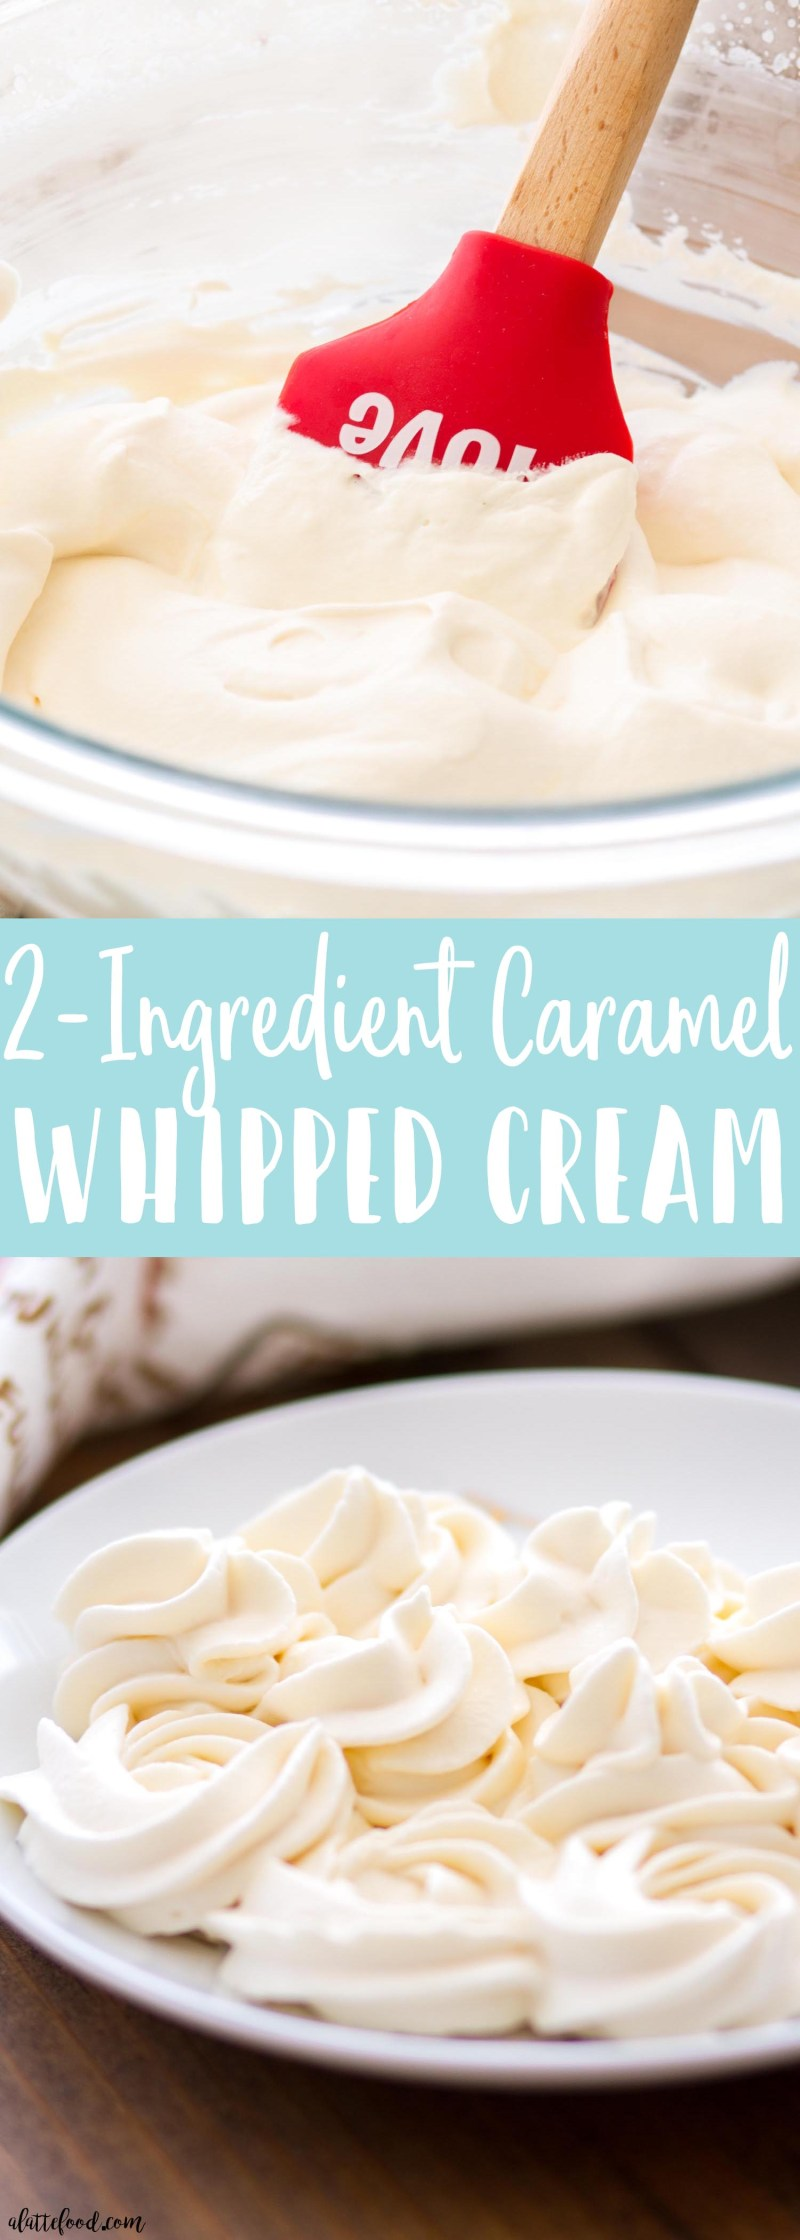 (2-Ingredient) Caramel Whipped Cream -- This homemade whipped cream recipe is only 2-ingredients! Heavy whipping cream and caramel sauce (caramel ice cream sauce) are whipped together until thick and creamy. This Caramel Whipped Cream recipe is perfect on coffee, pie, and any other dessert recipe!